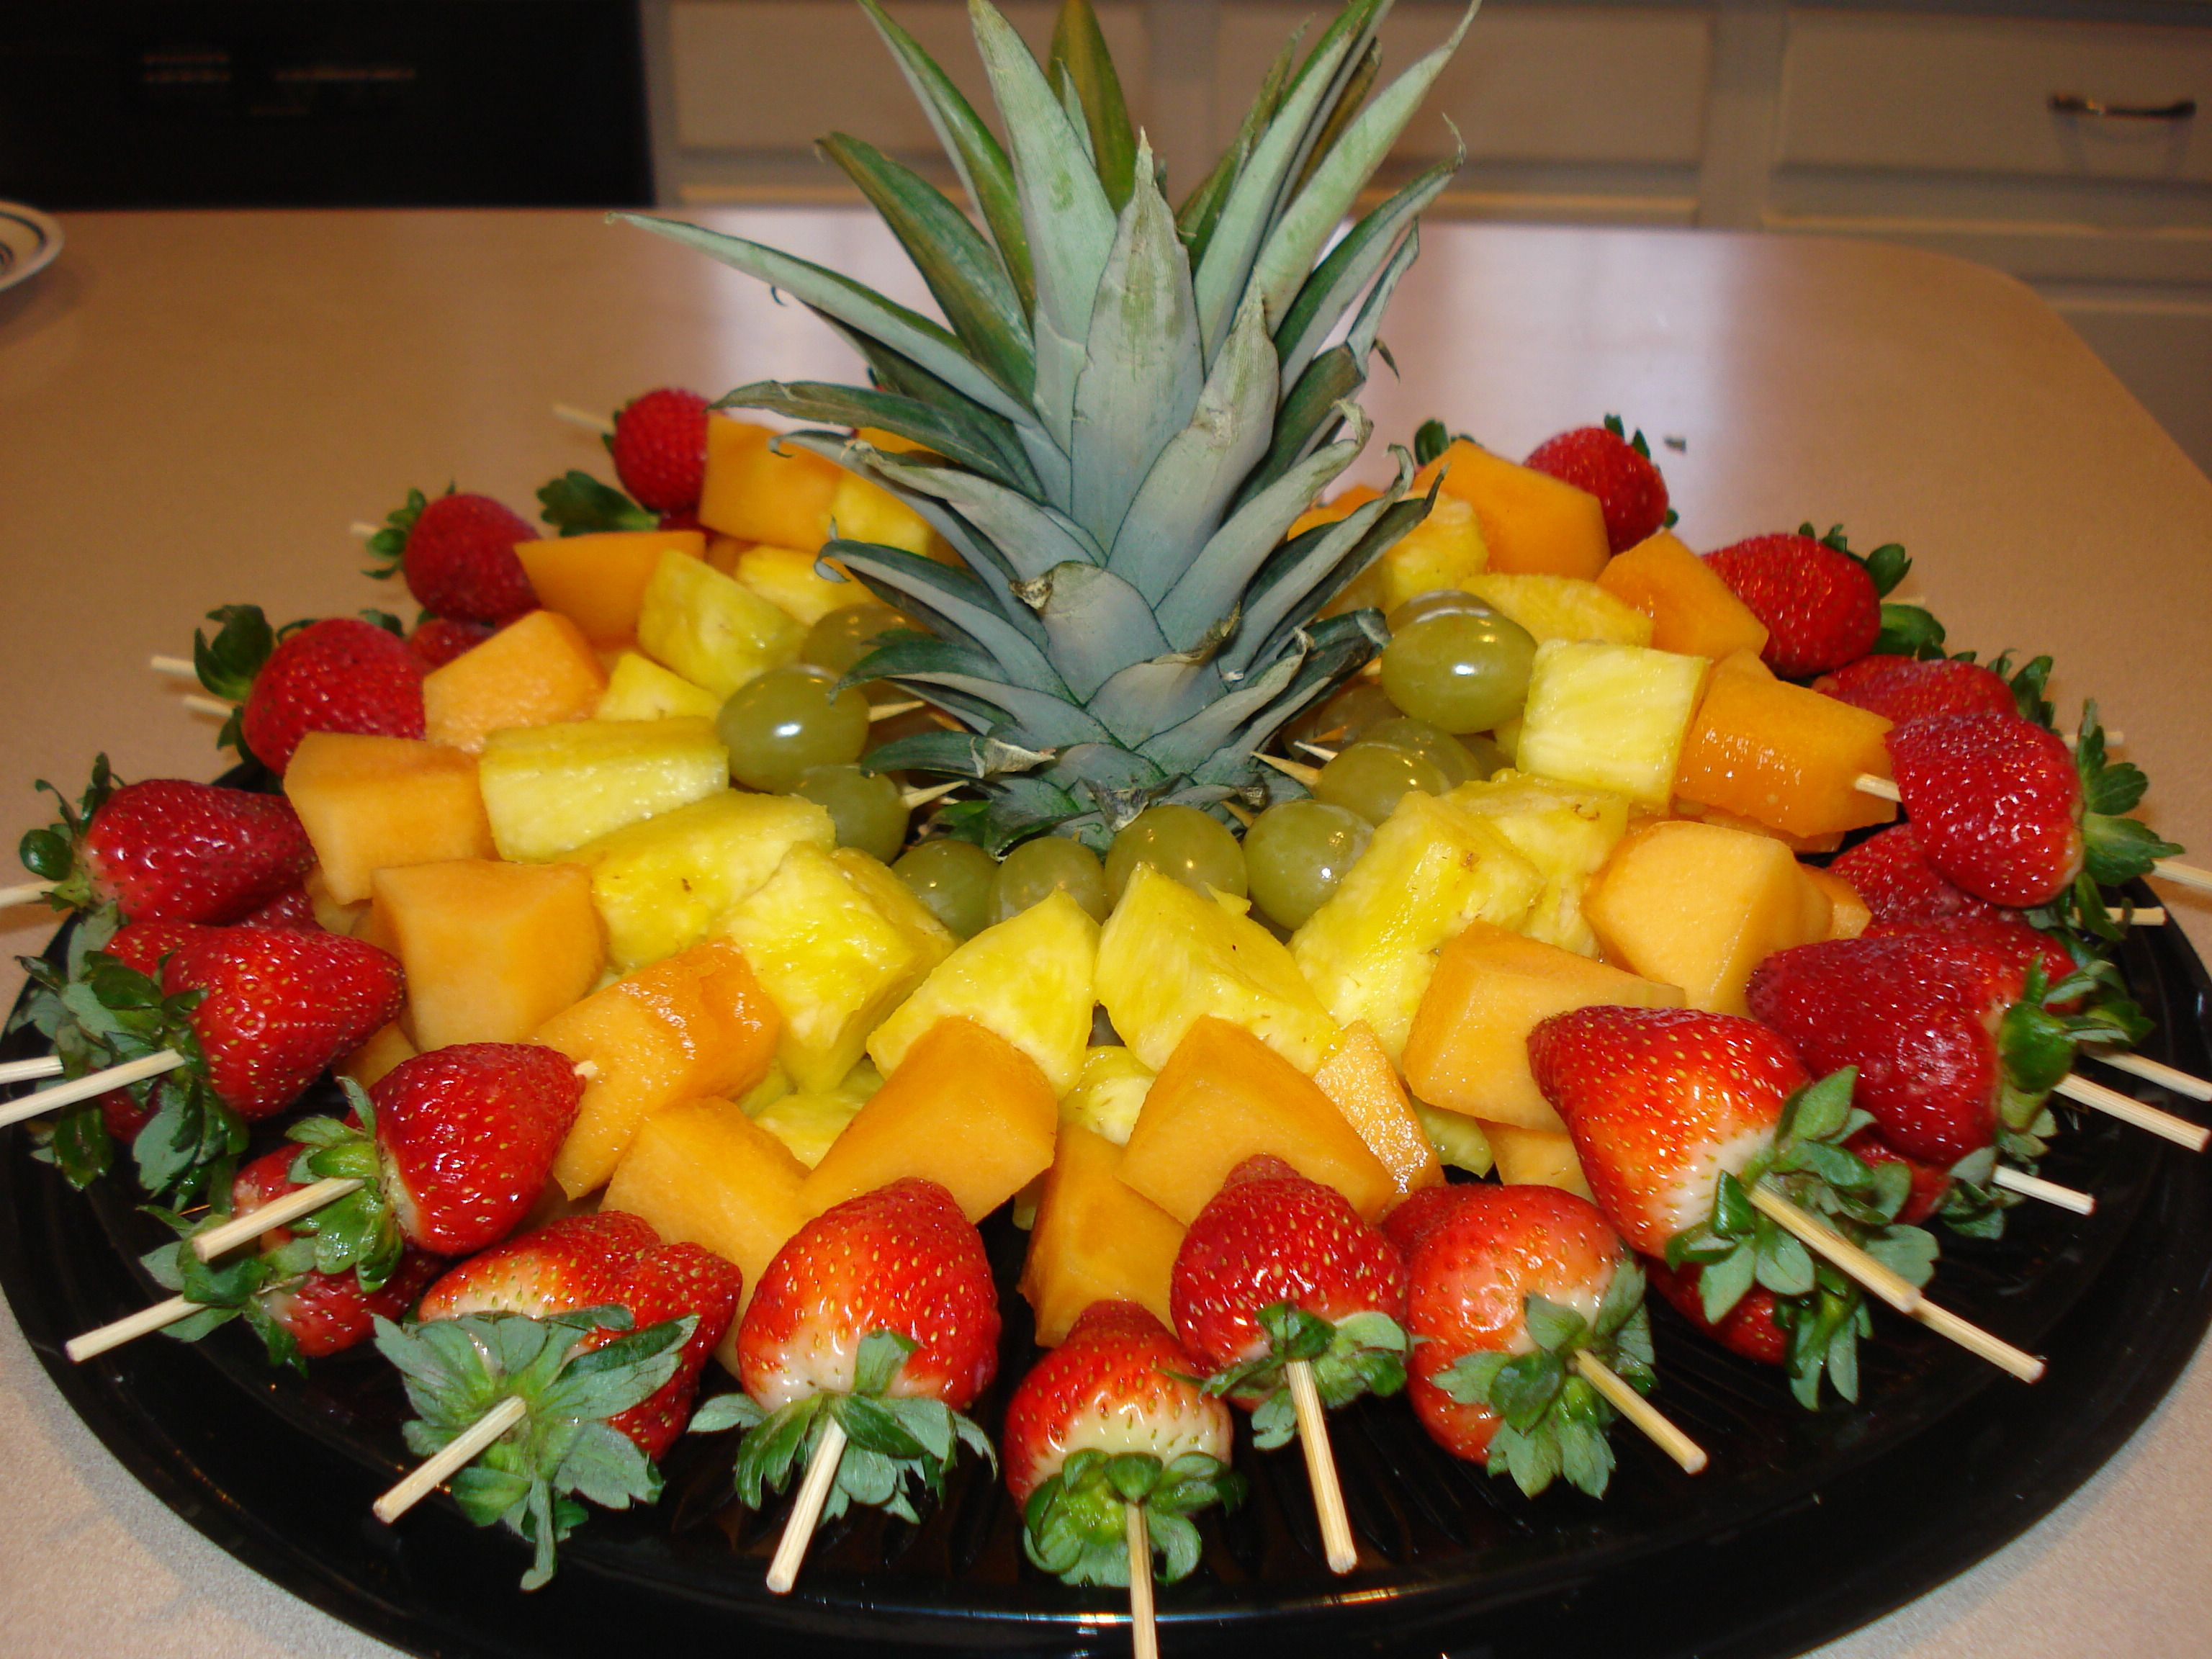 Imagenes De Mesas De Frutas Para Fiestas Fruit Skewers For A Party Cut Top Off Of Pineapple To Stabilize